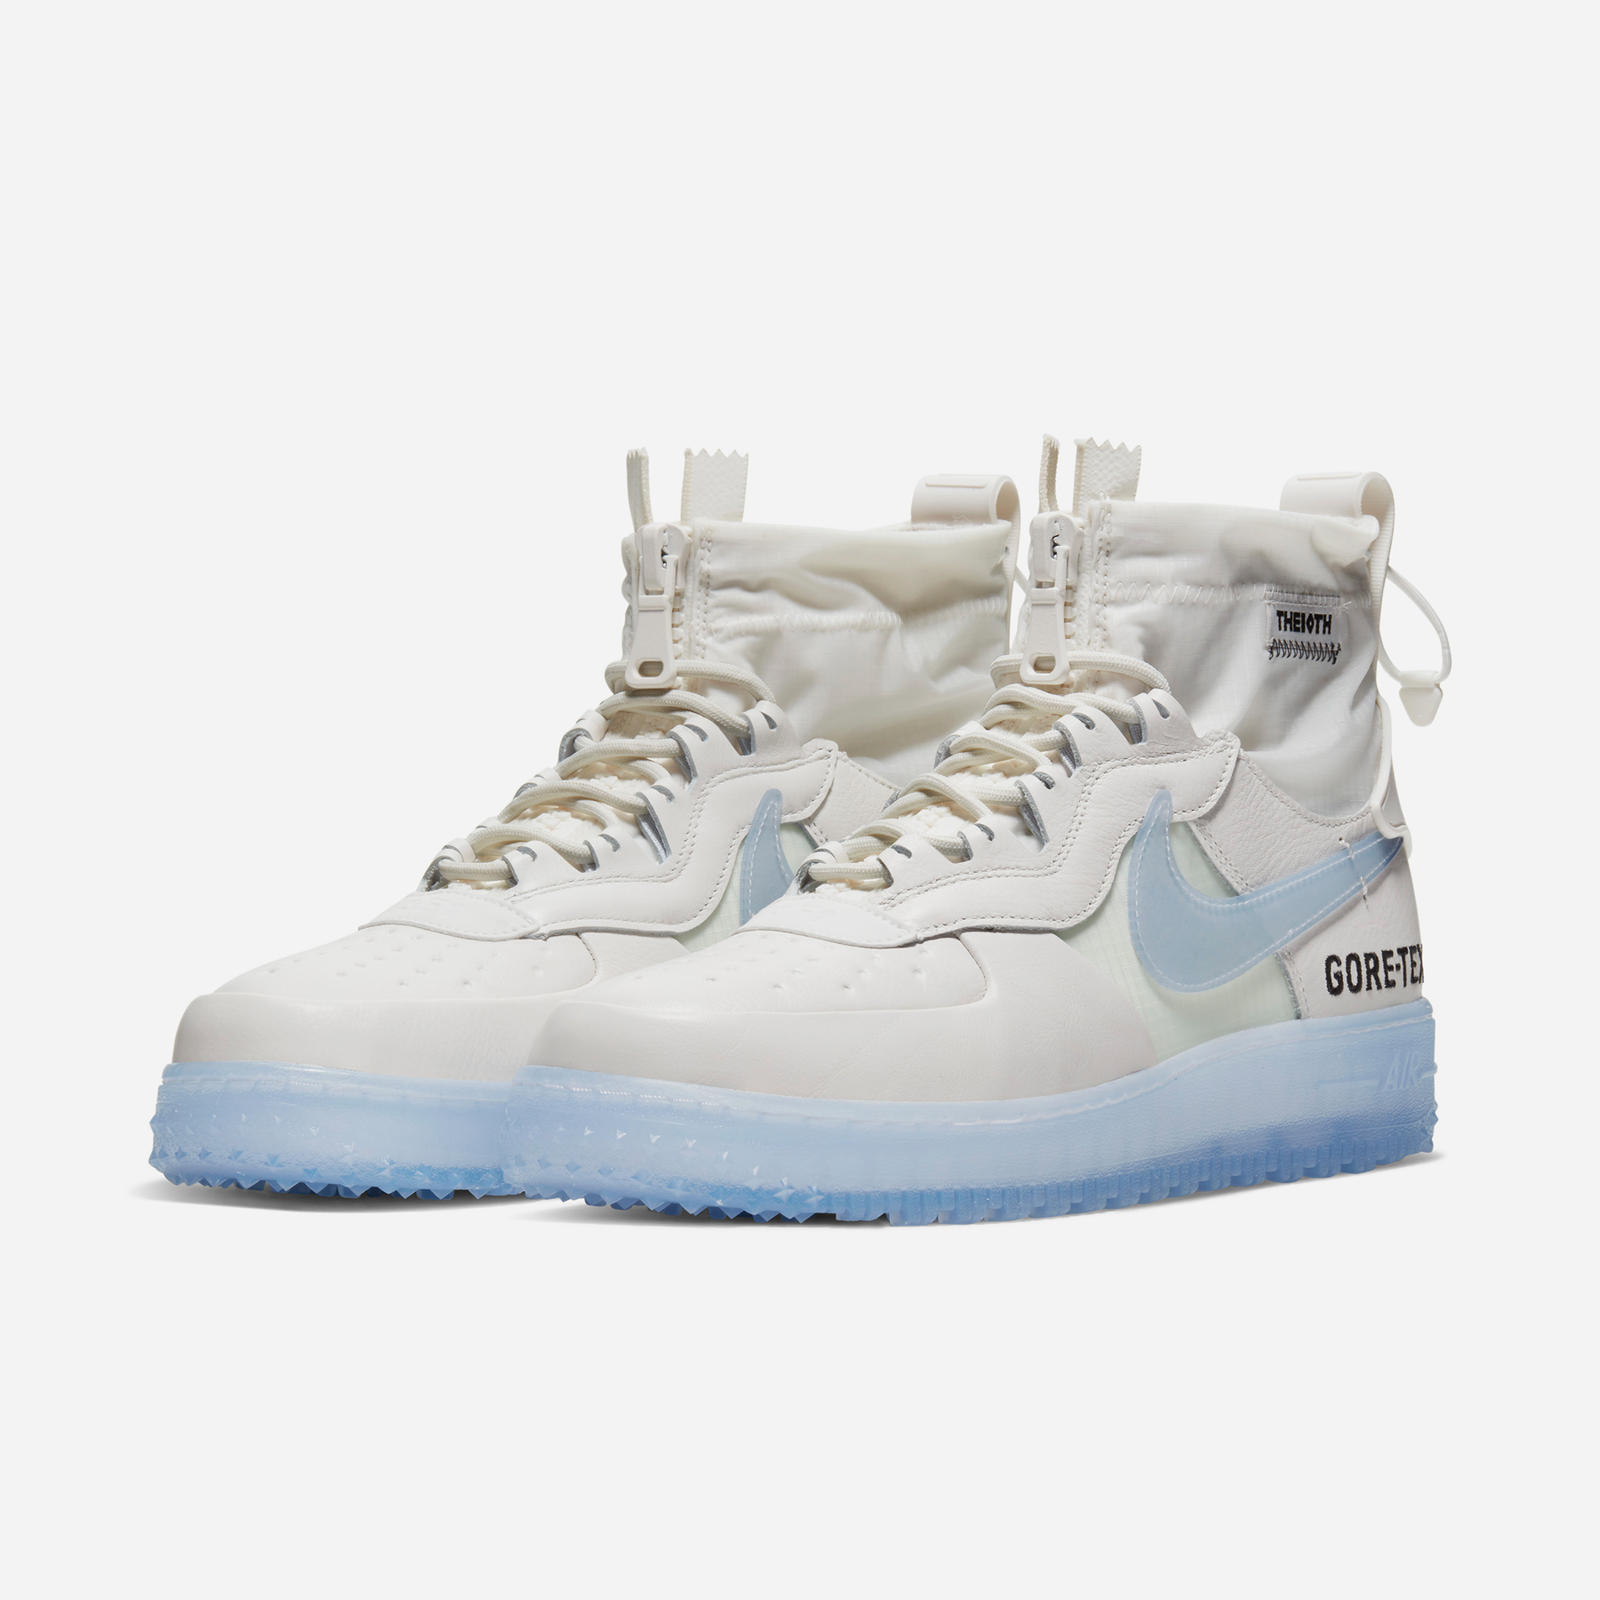 Force and TexNBA and 1 Bones Gore Official Air Images LzVpqSMGU